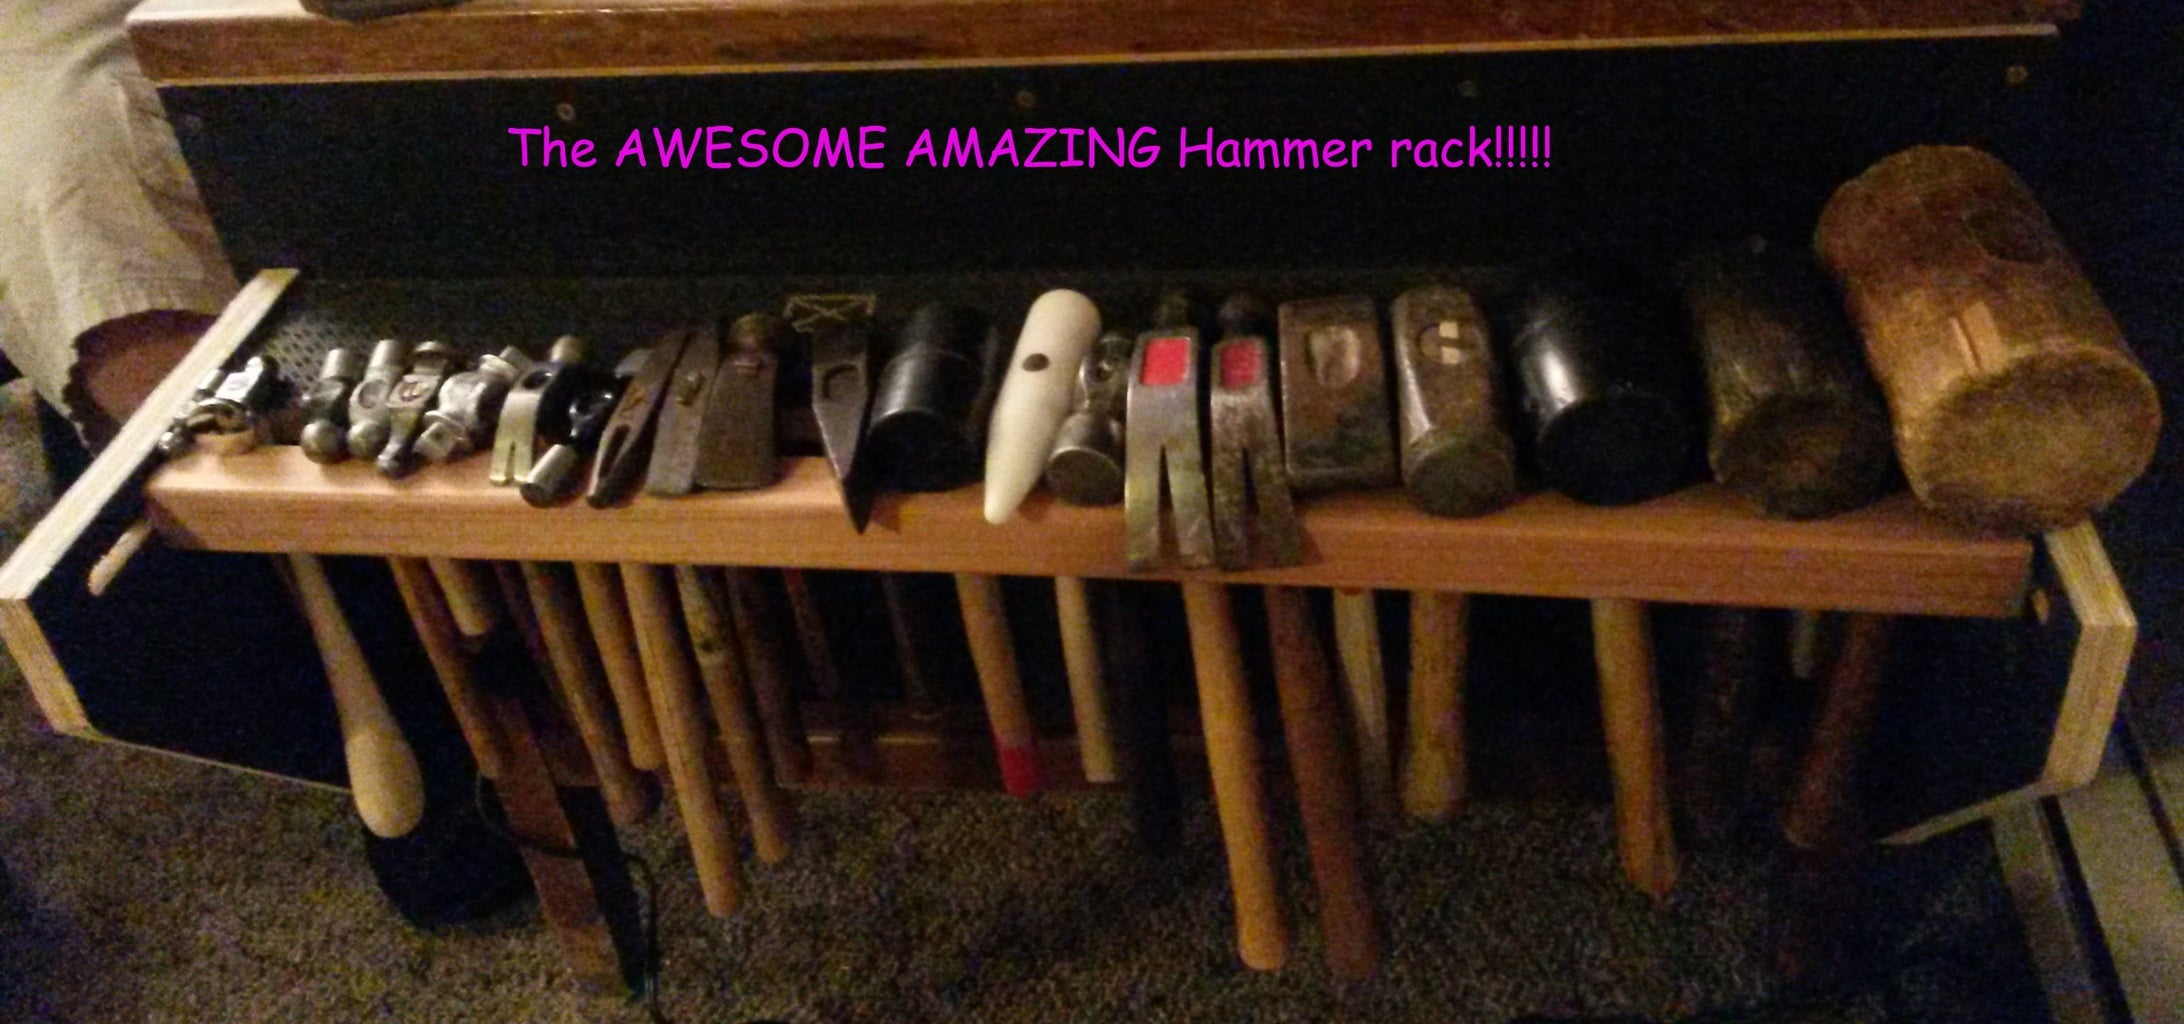 C: the Awesome Amazing Hammer Rack!!!!